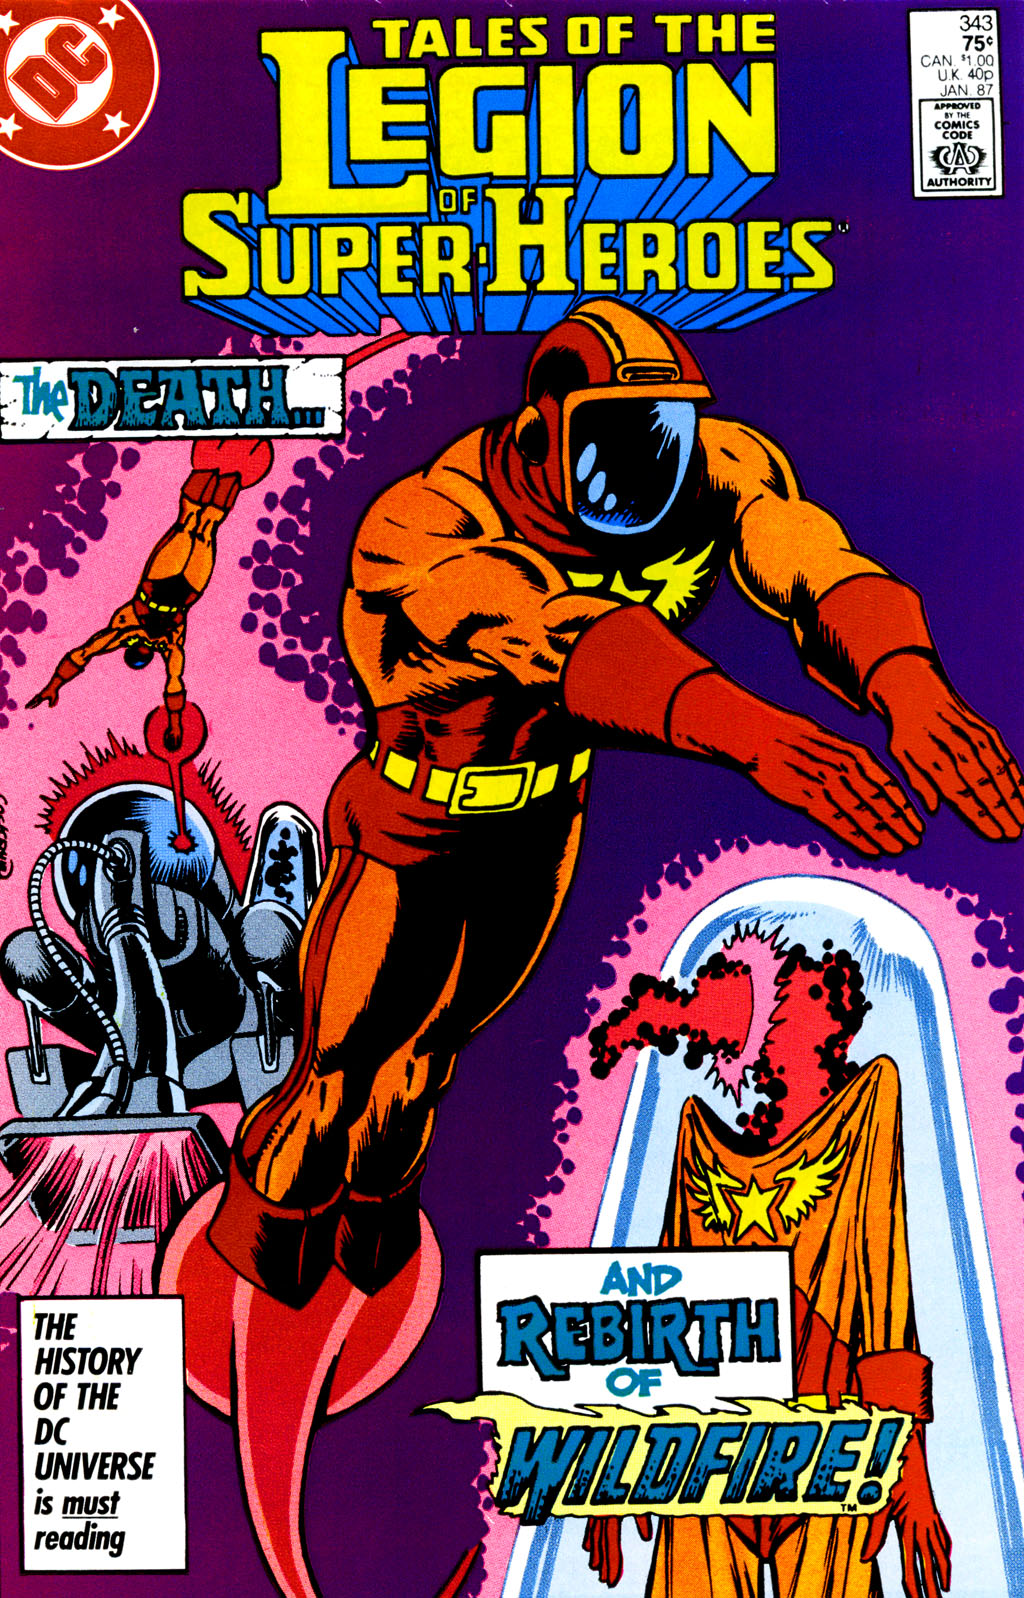 Tales of the Legion Issue #343 #30 - English 1